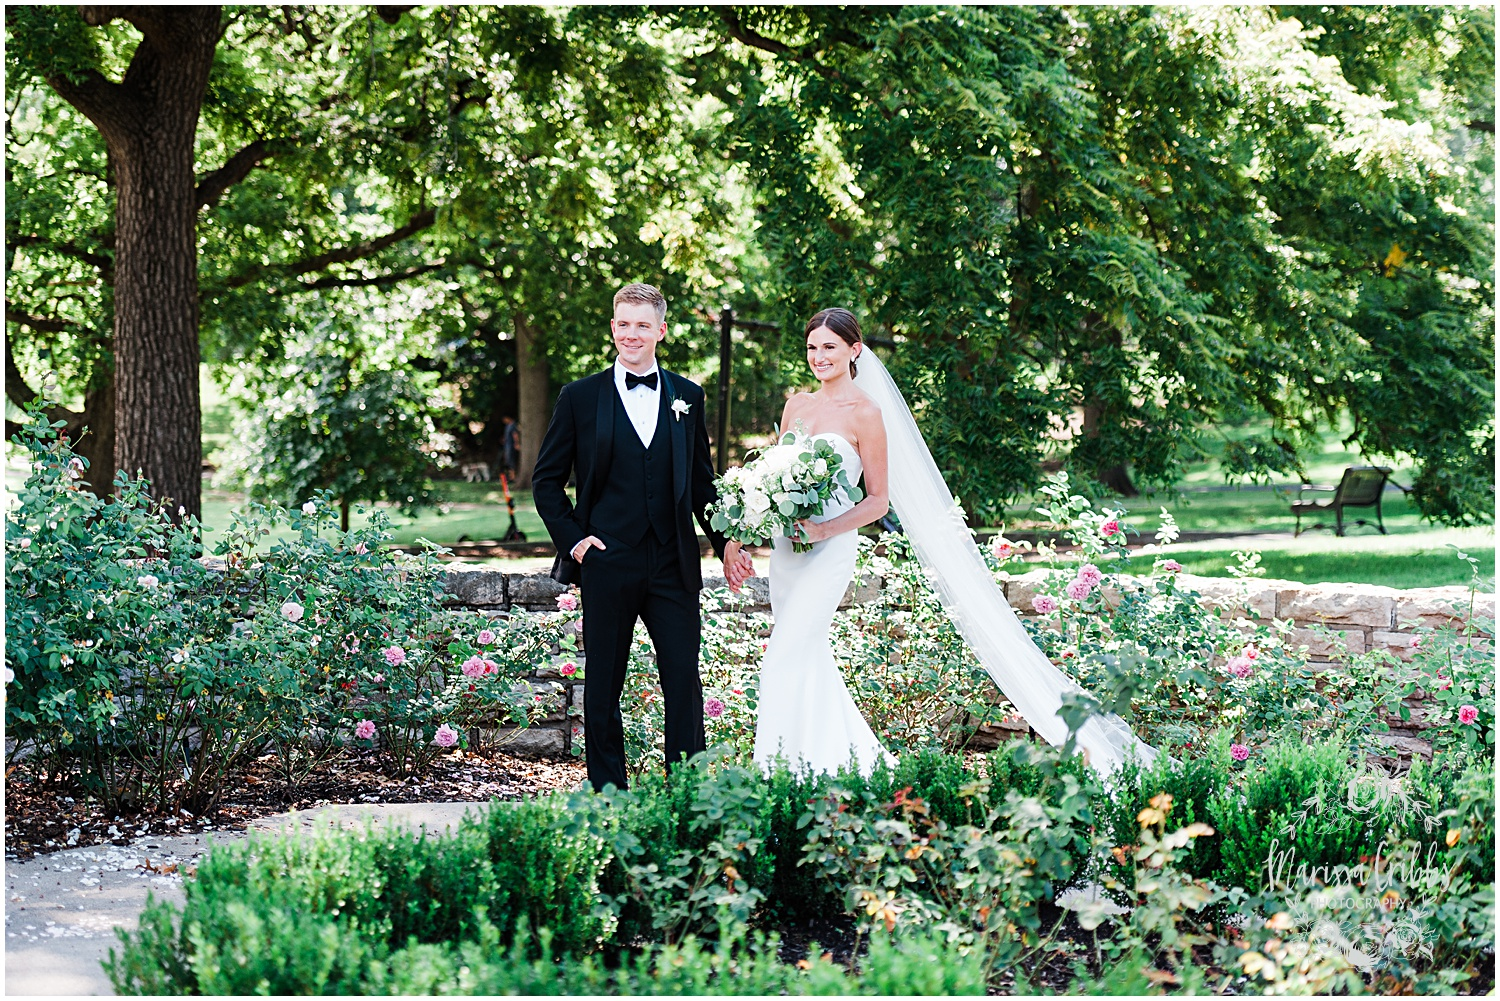 JOANNE & GEORGE MARRIED BLOG | MARISSA CRIBBS PHOTOGRAPHY | THE ABBOTT | KANSAS CITY WEDDING PHOTOS_9069.jpg